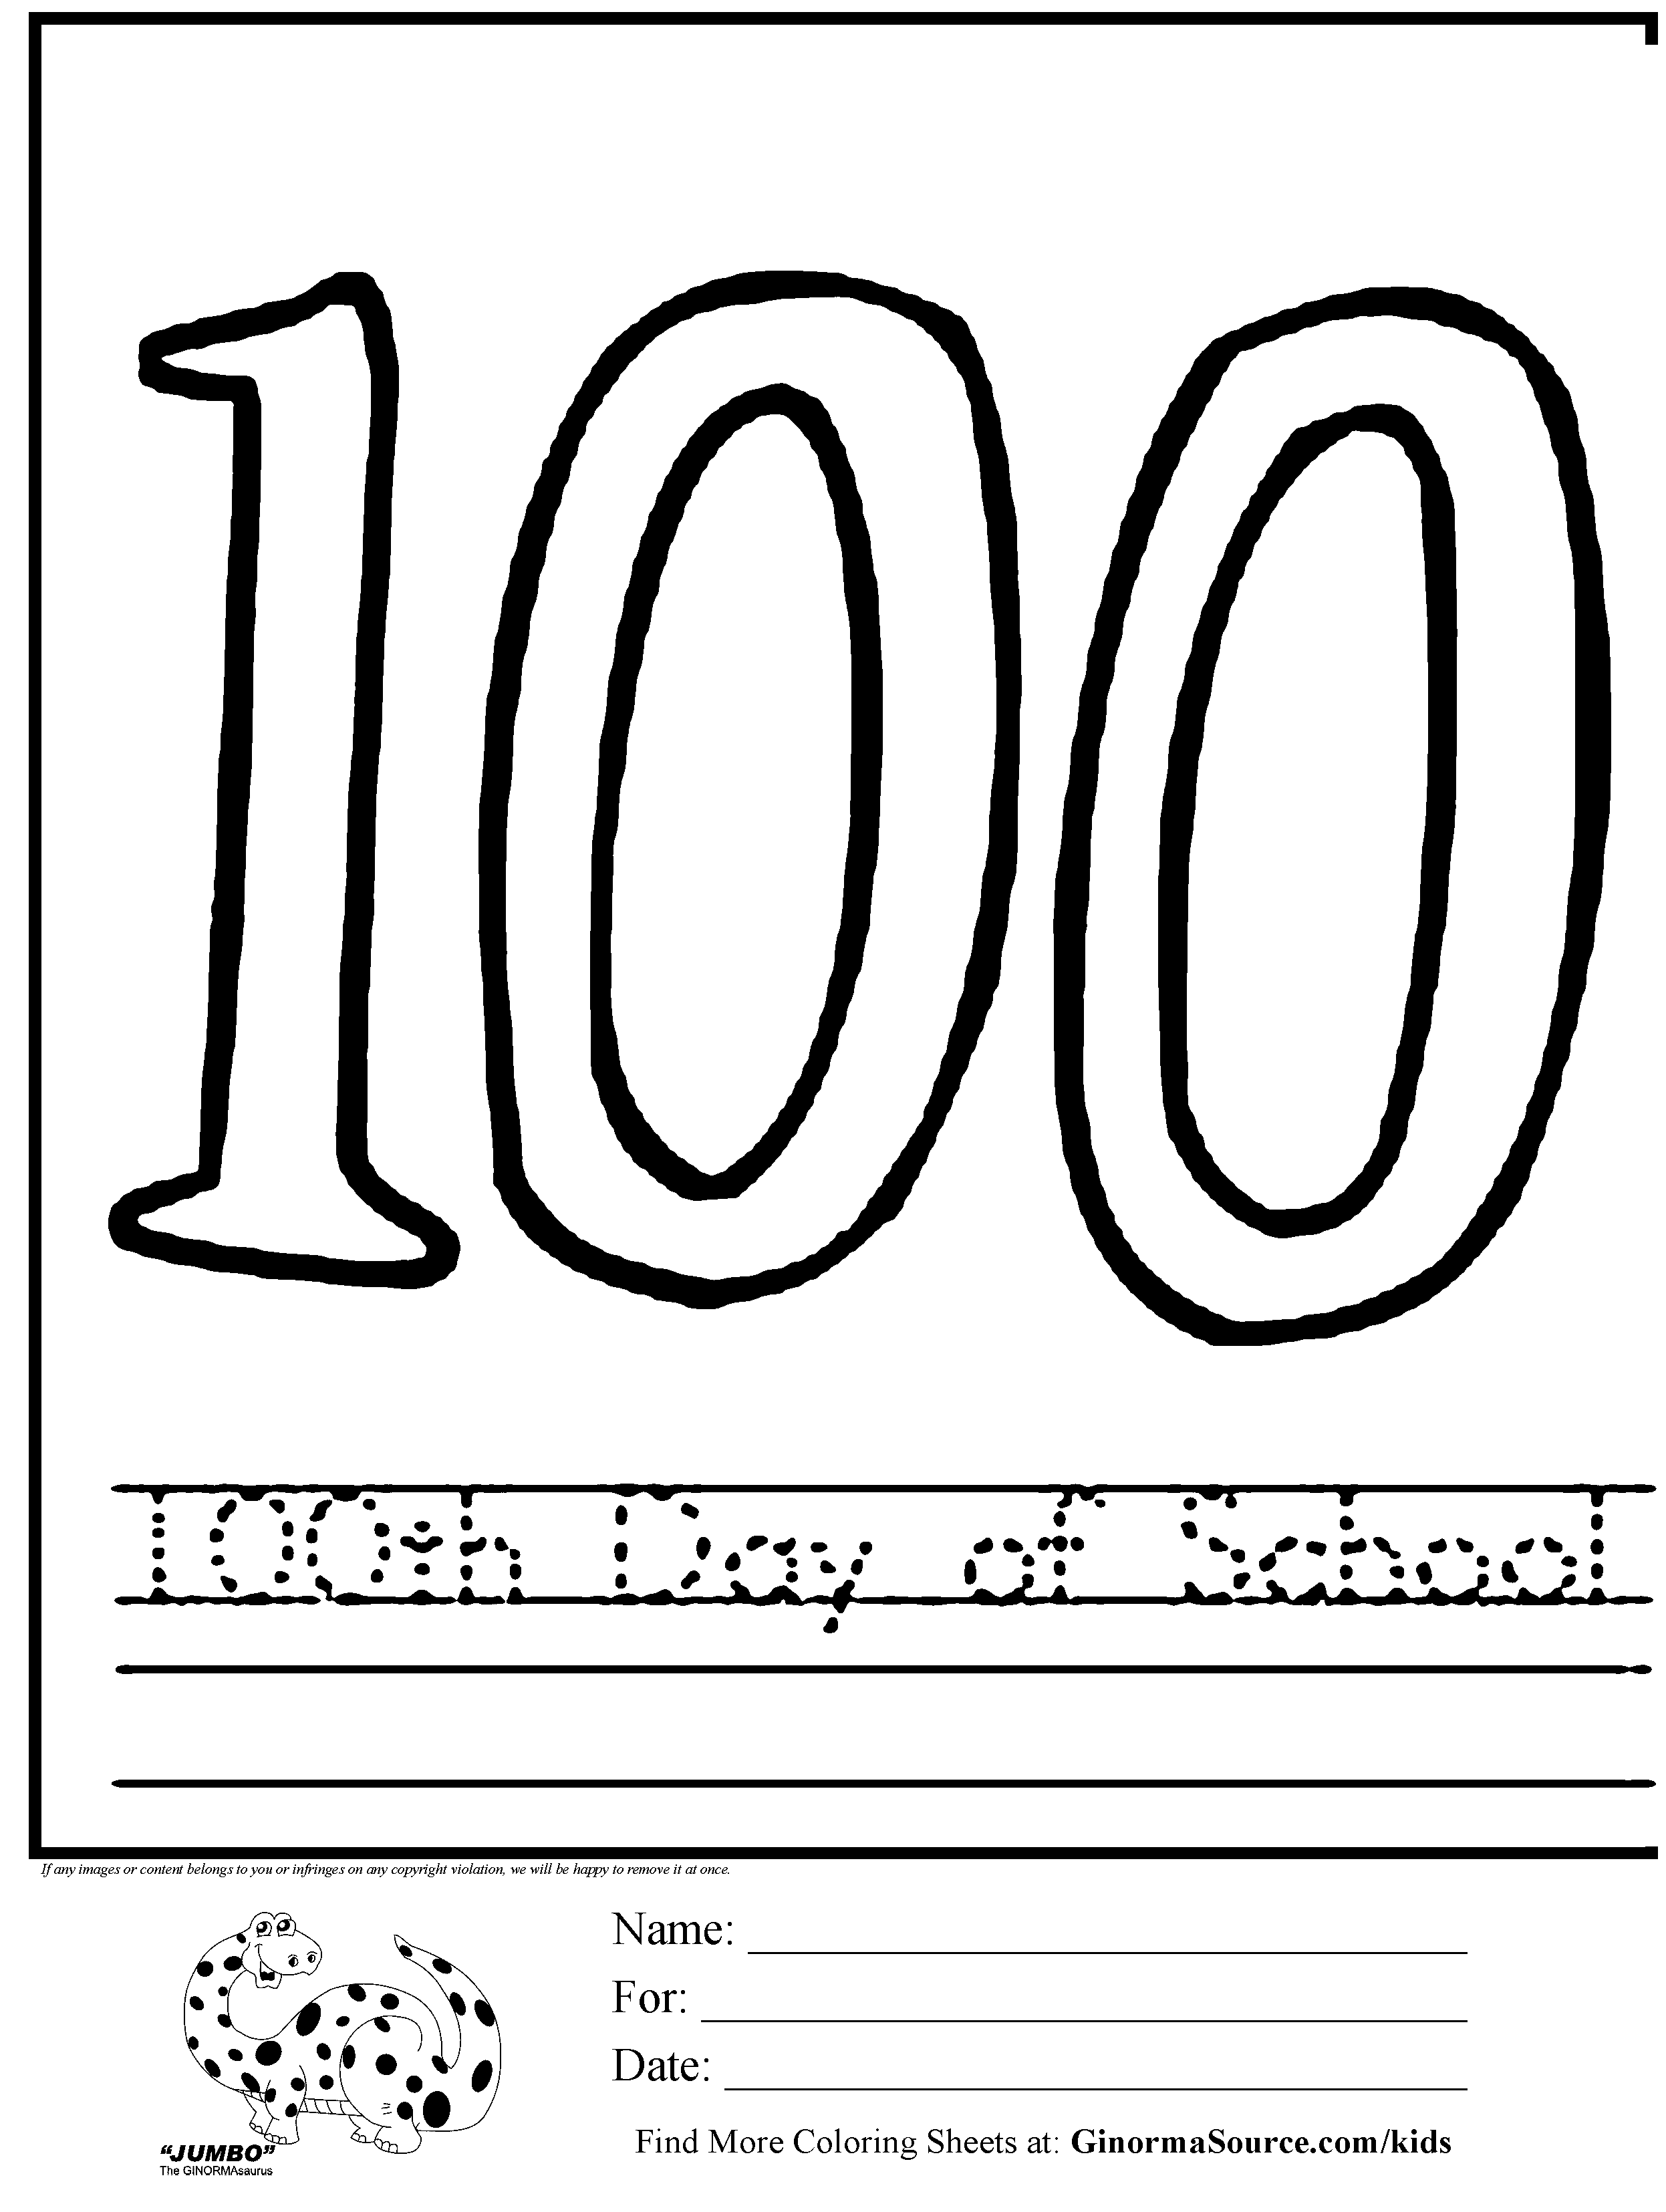 - 100th Day Of School Coloring Pages Free - Coloring Home